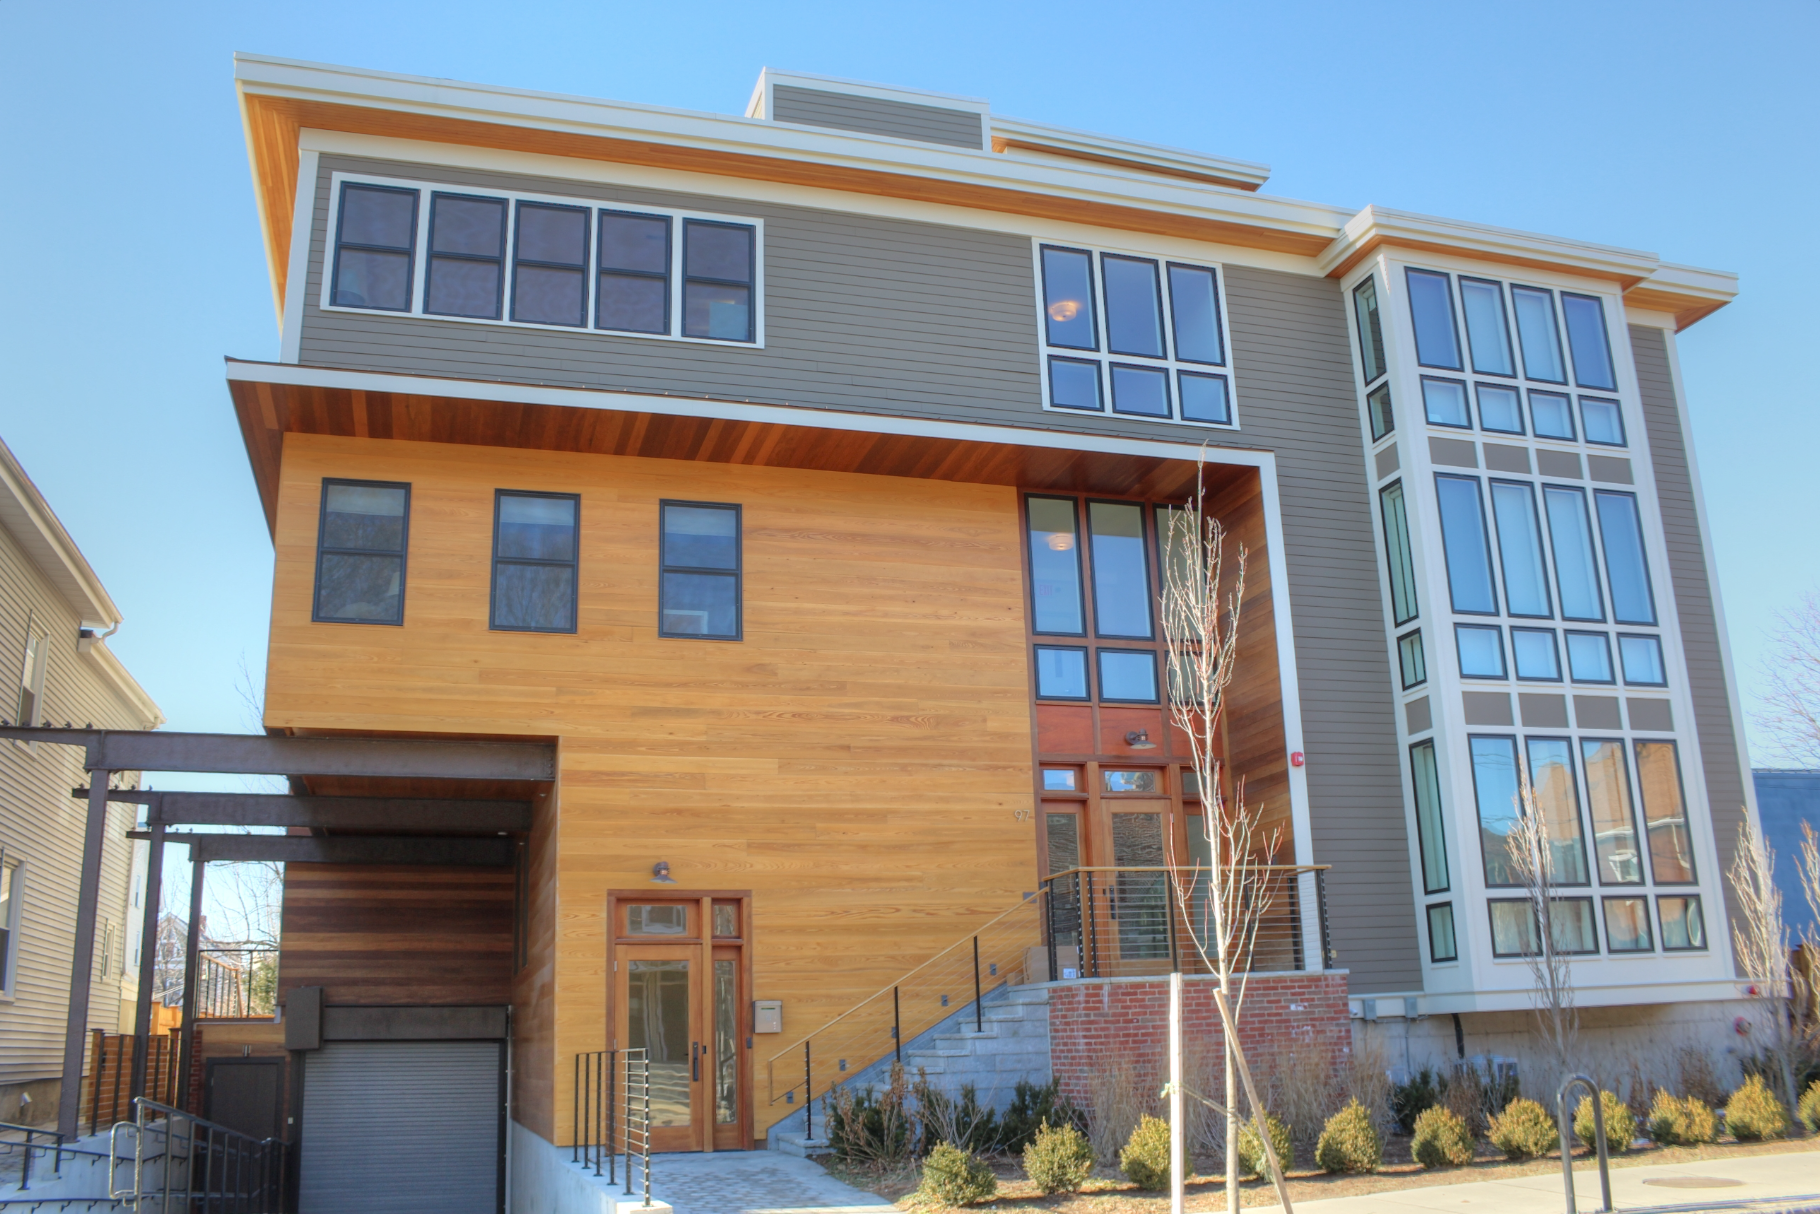 Top design trends for new construction homes in 2015 for New home construction trends